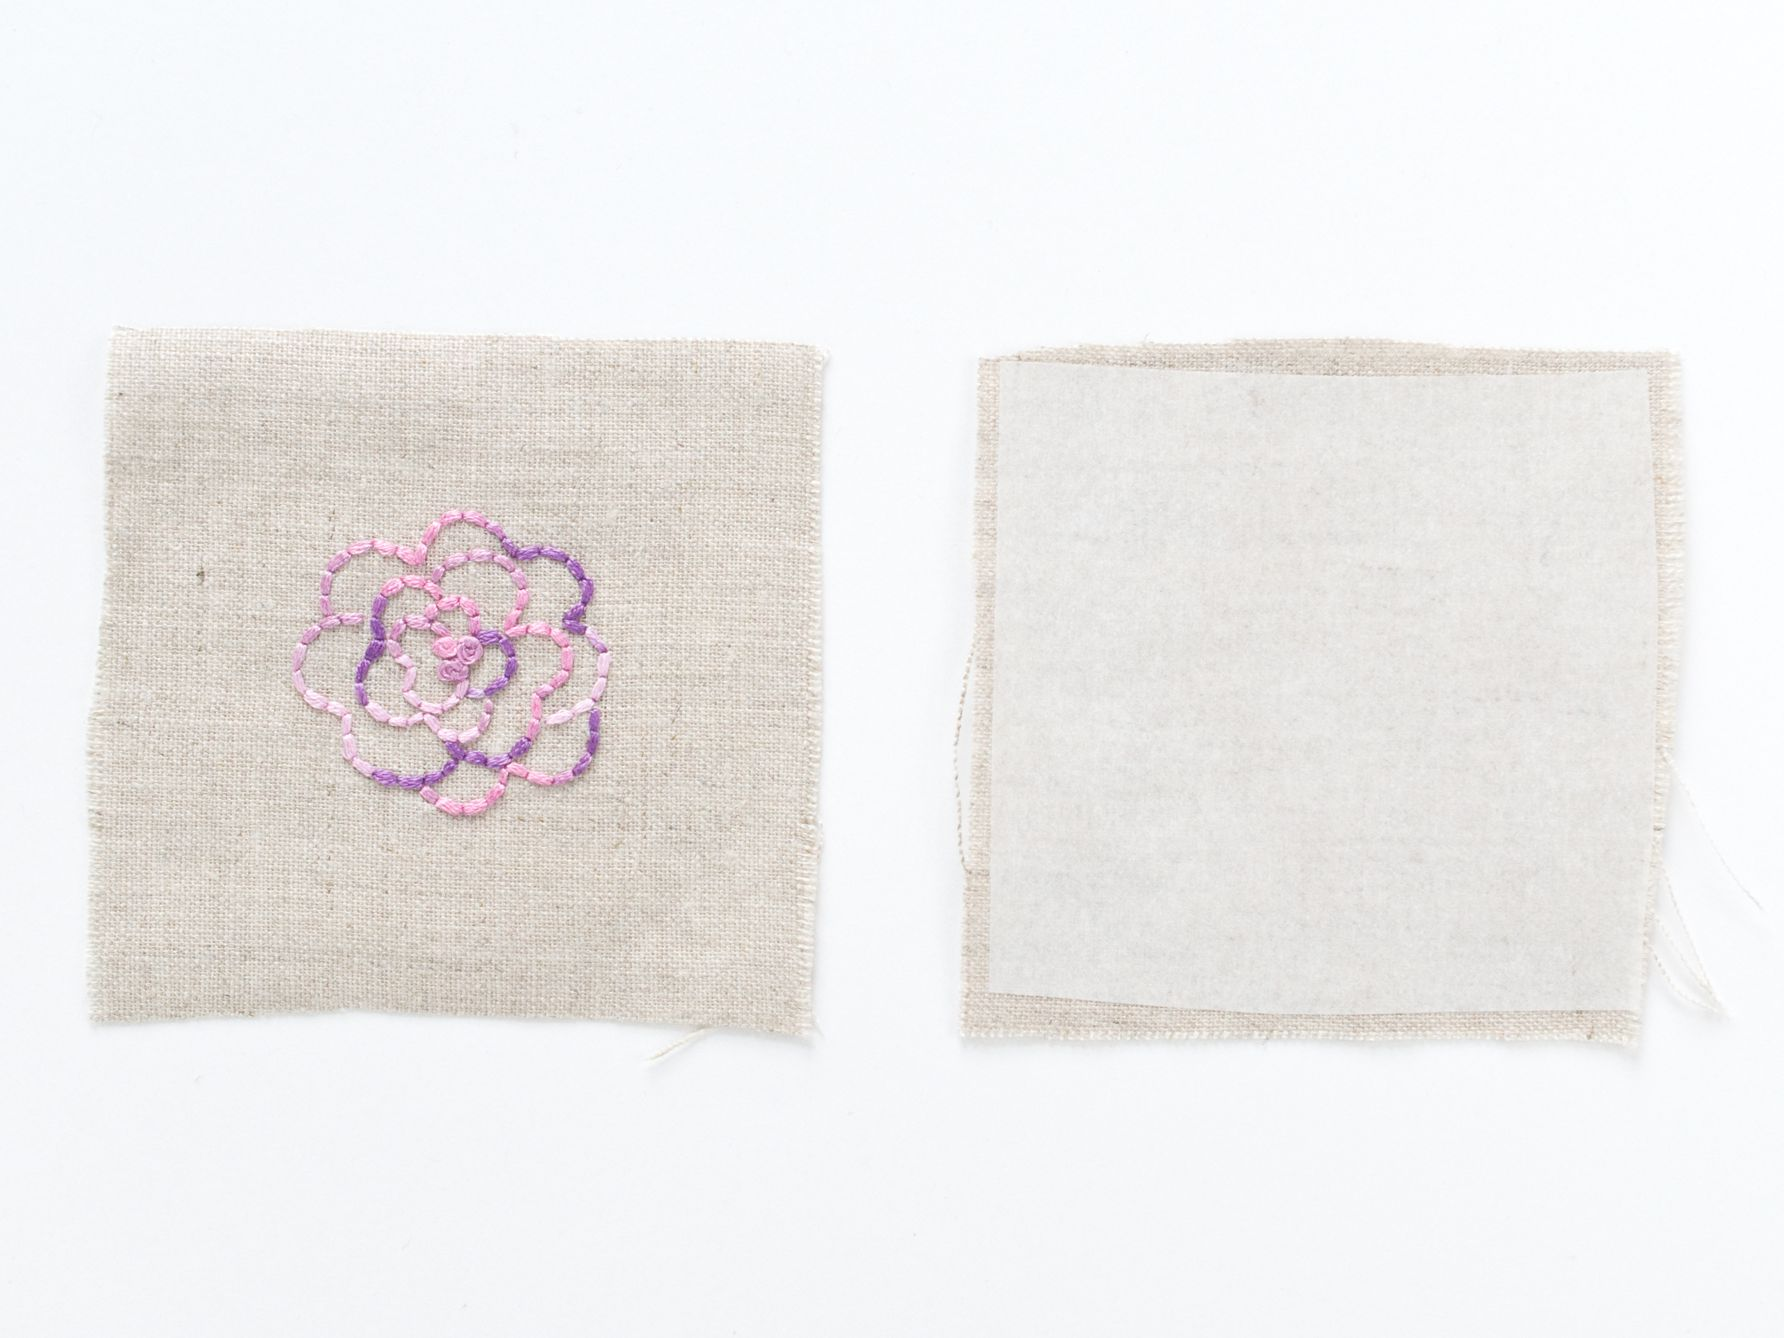 4 Ways To Make Your Own Hand Embroidered Felt Patches